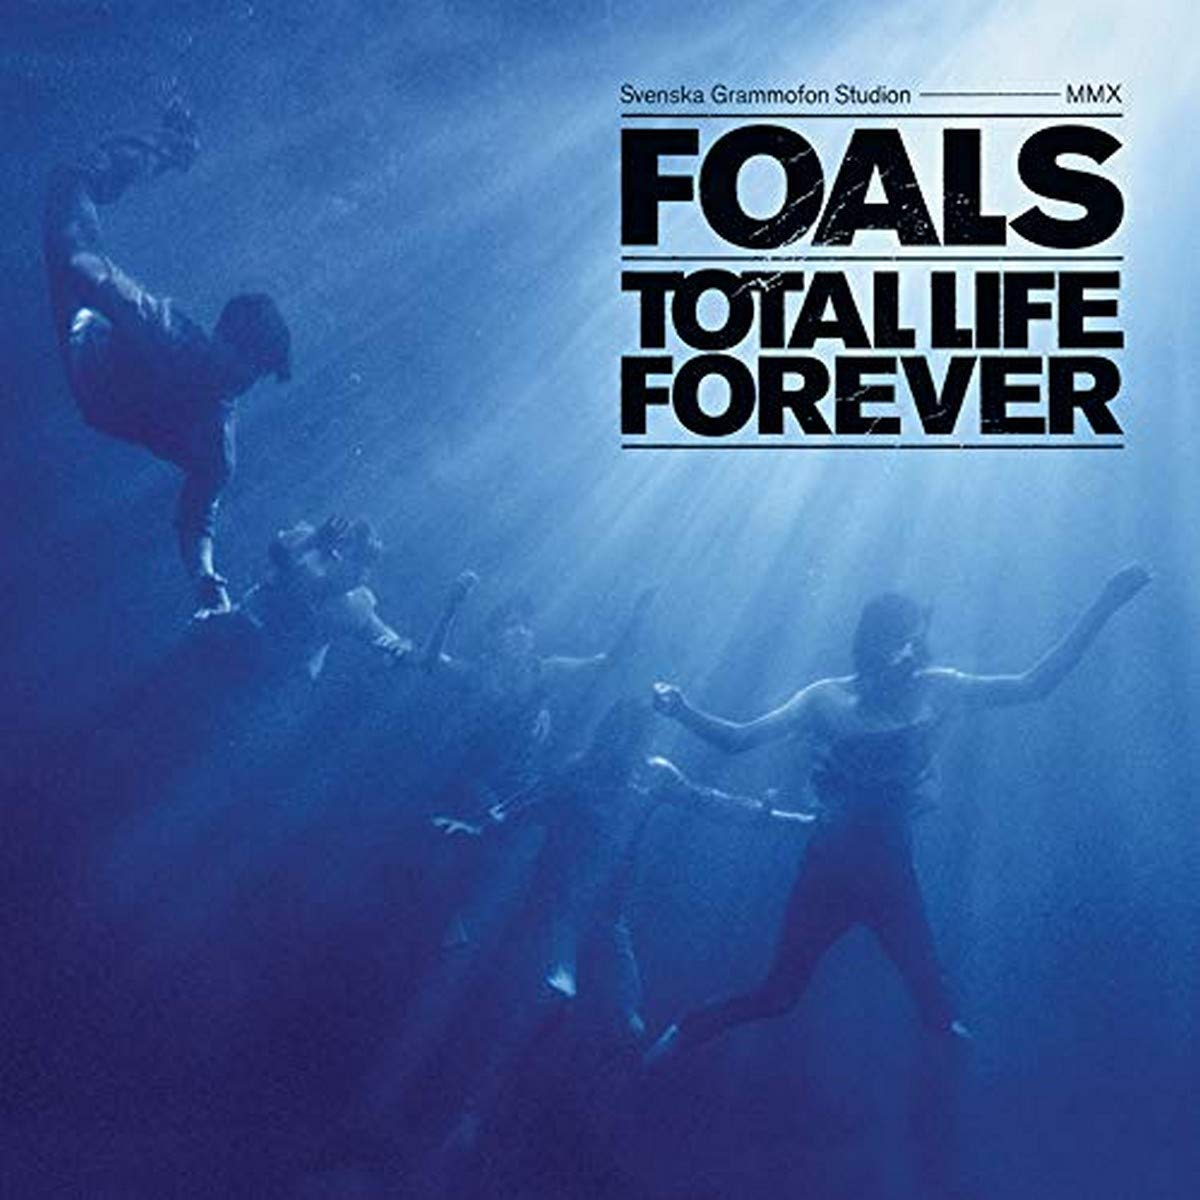 Foals, Total Life Forever